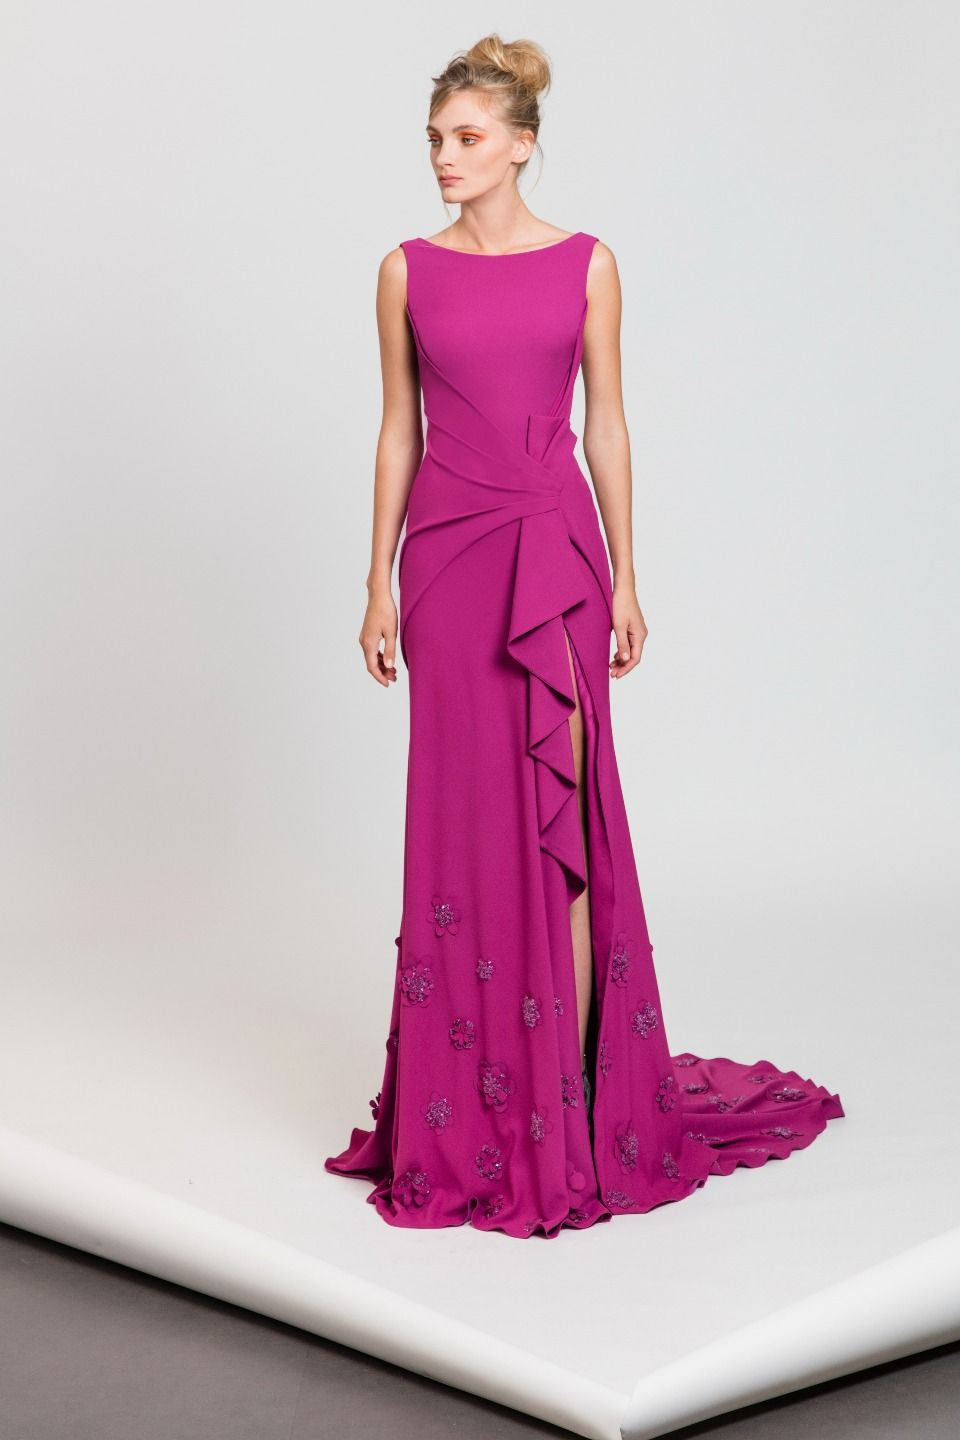 Magenta moroccan crepe dress with bateau neckline featuring a side